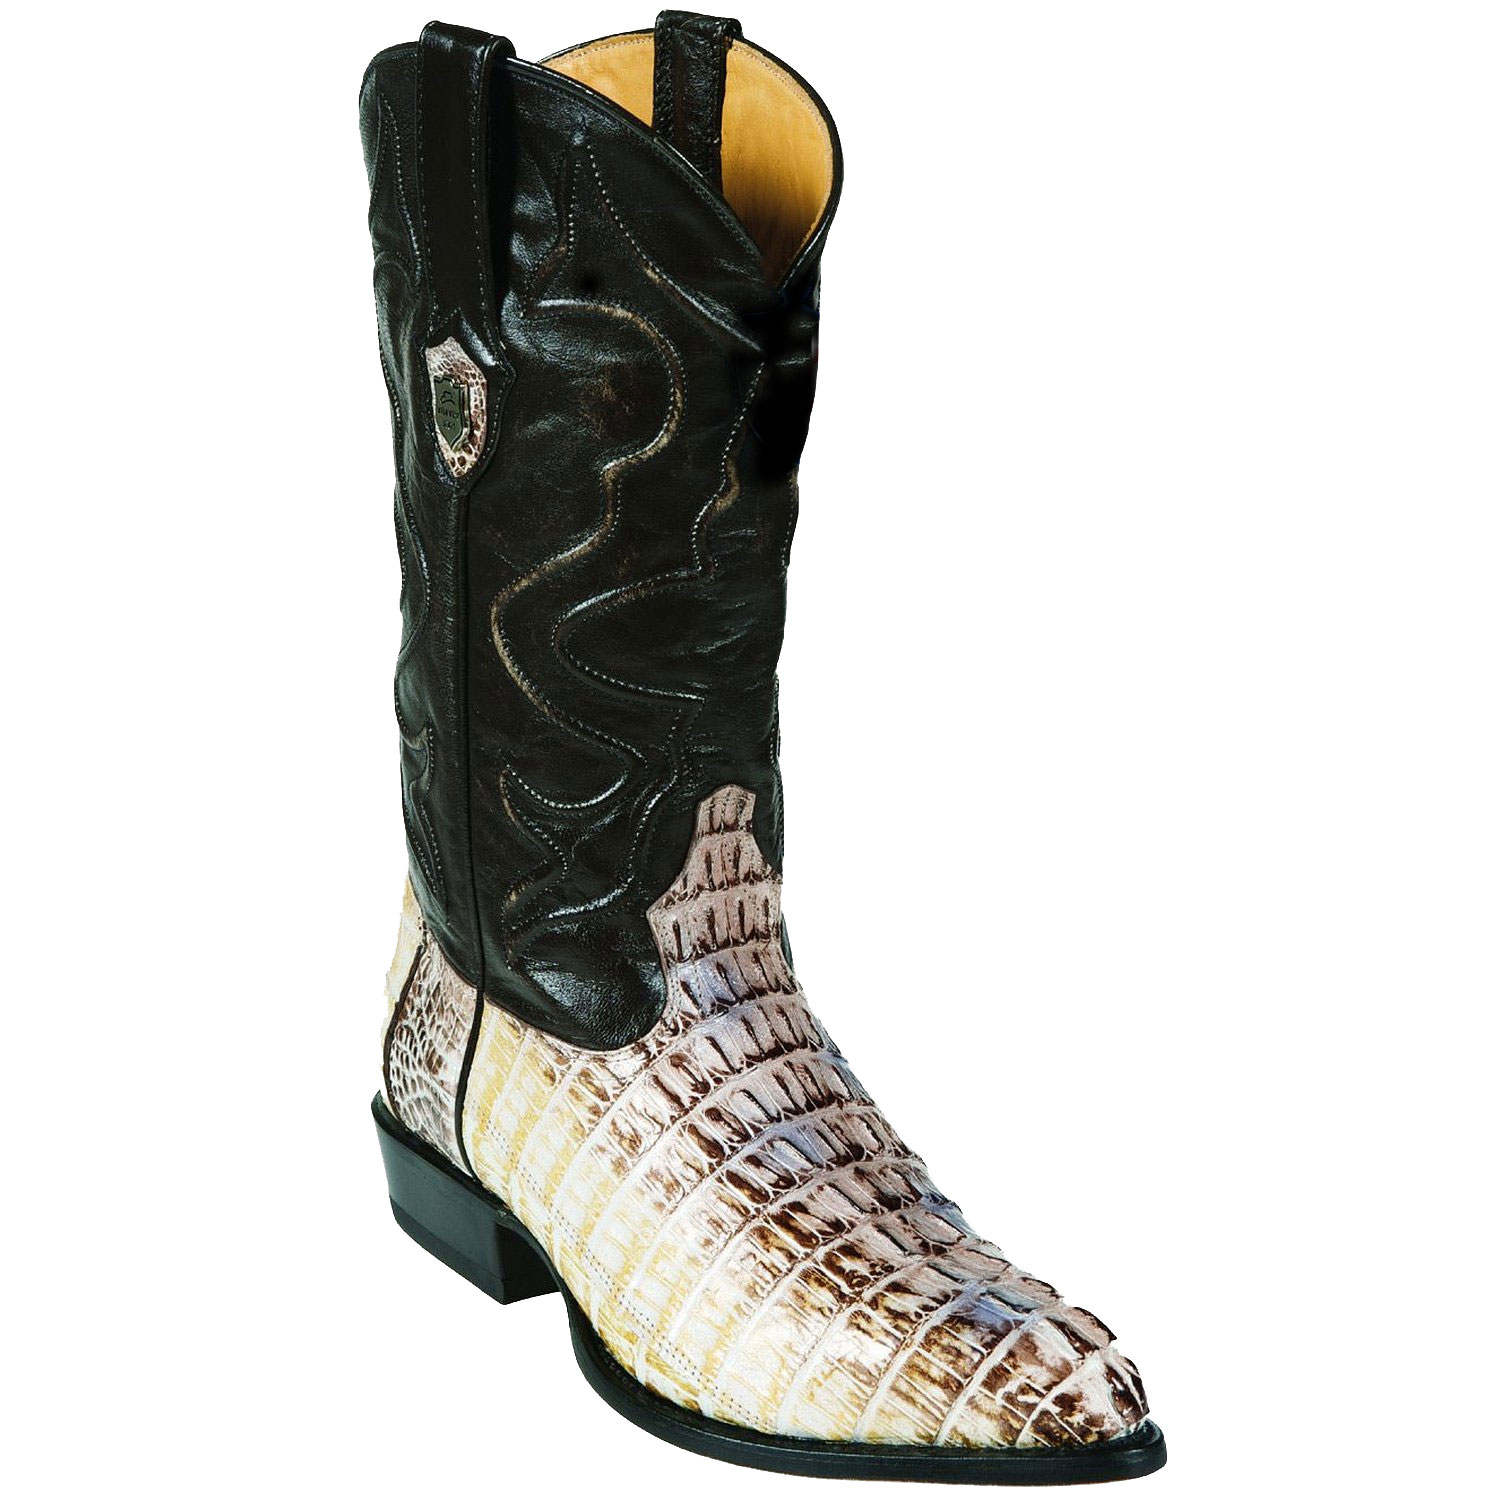 d6685056786 Product# RB7400 Wild West J-Toe Natural cai ~ Alligator skin Tail Cowboy  Boots